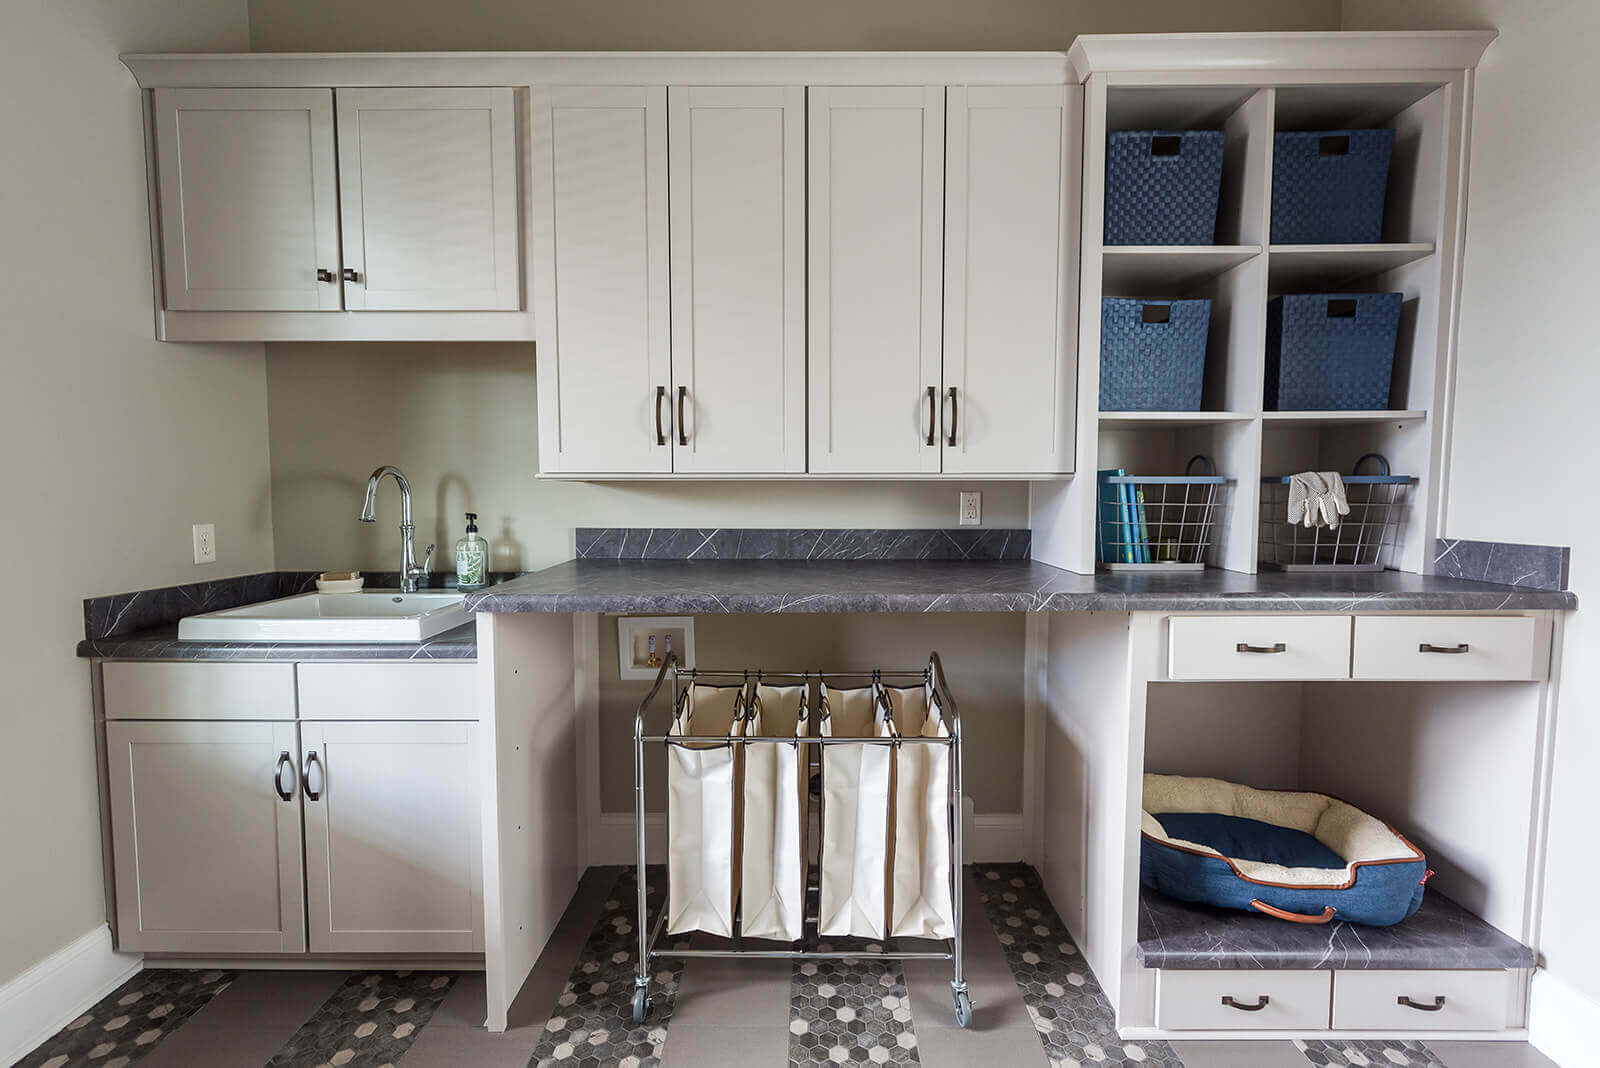 How COVID-19 Could Influence The Future of Home Design: Mudroom Design